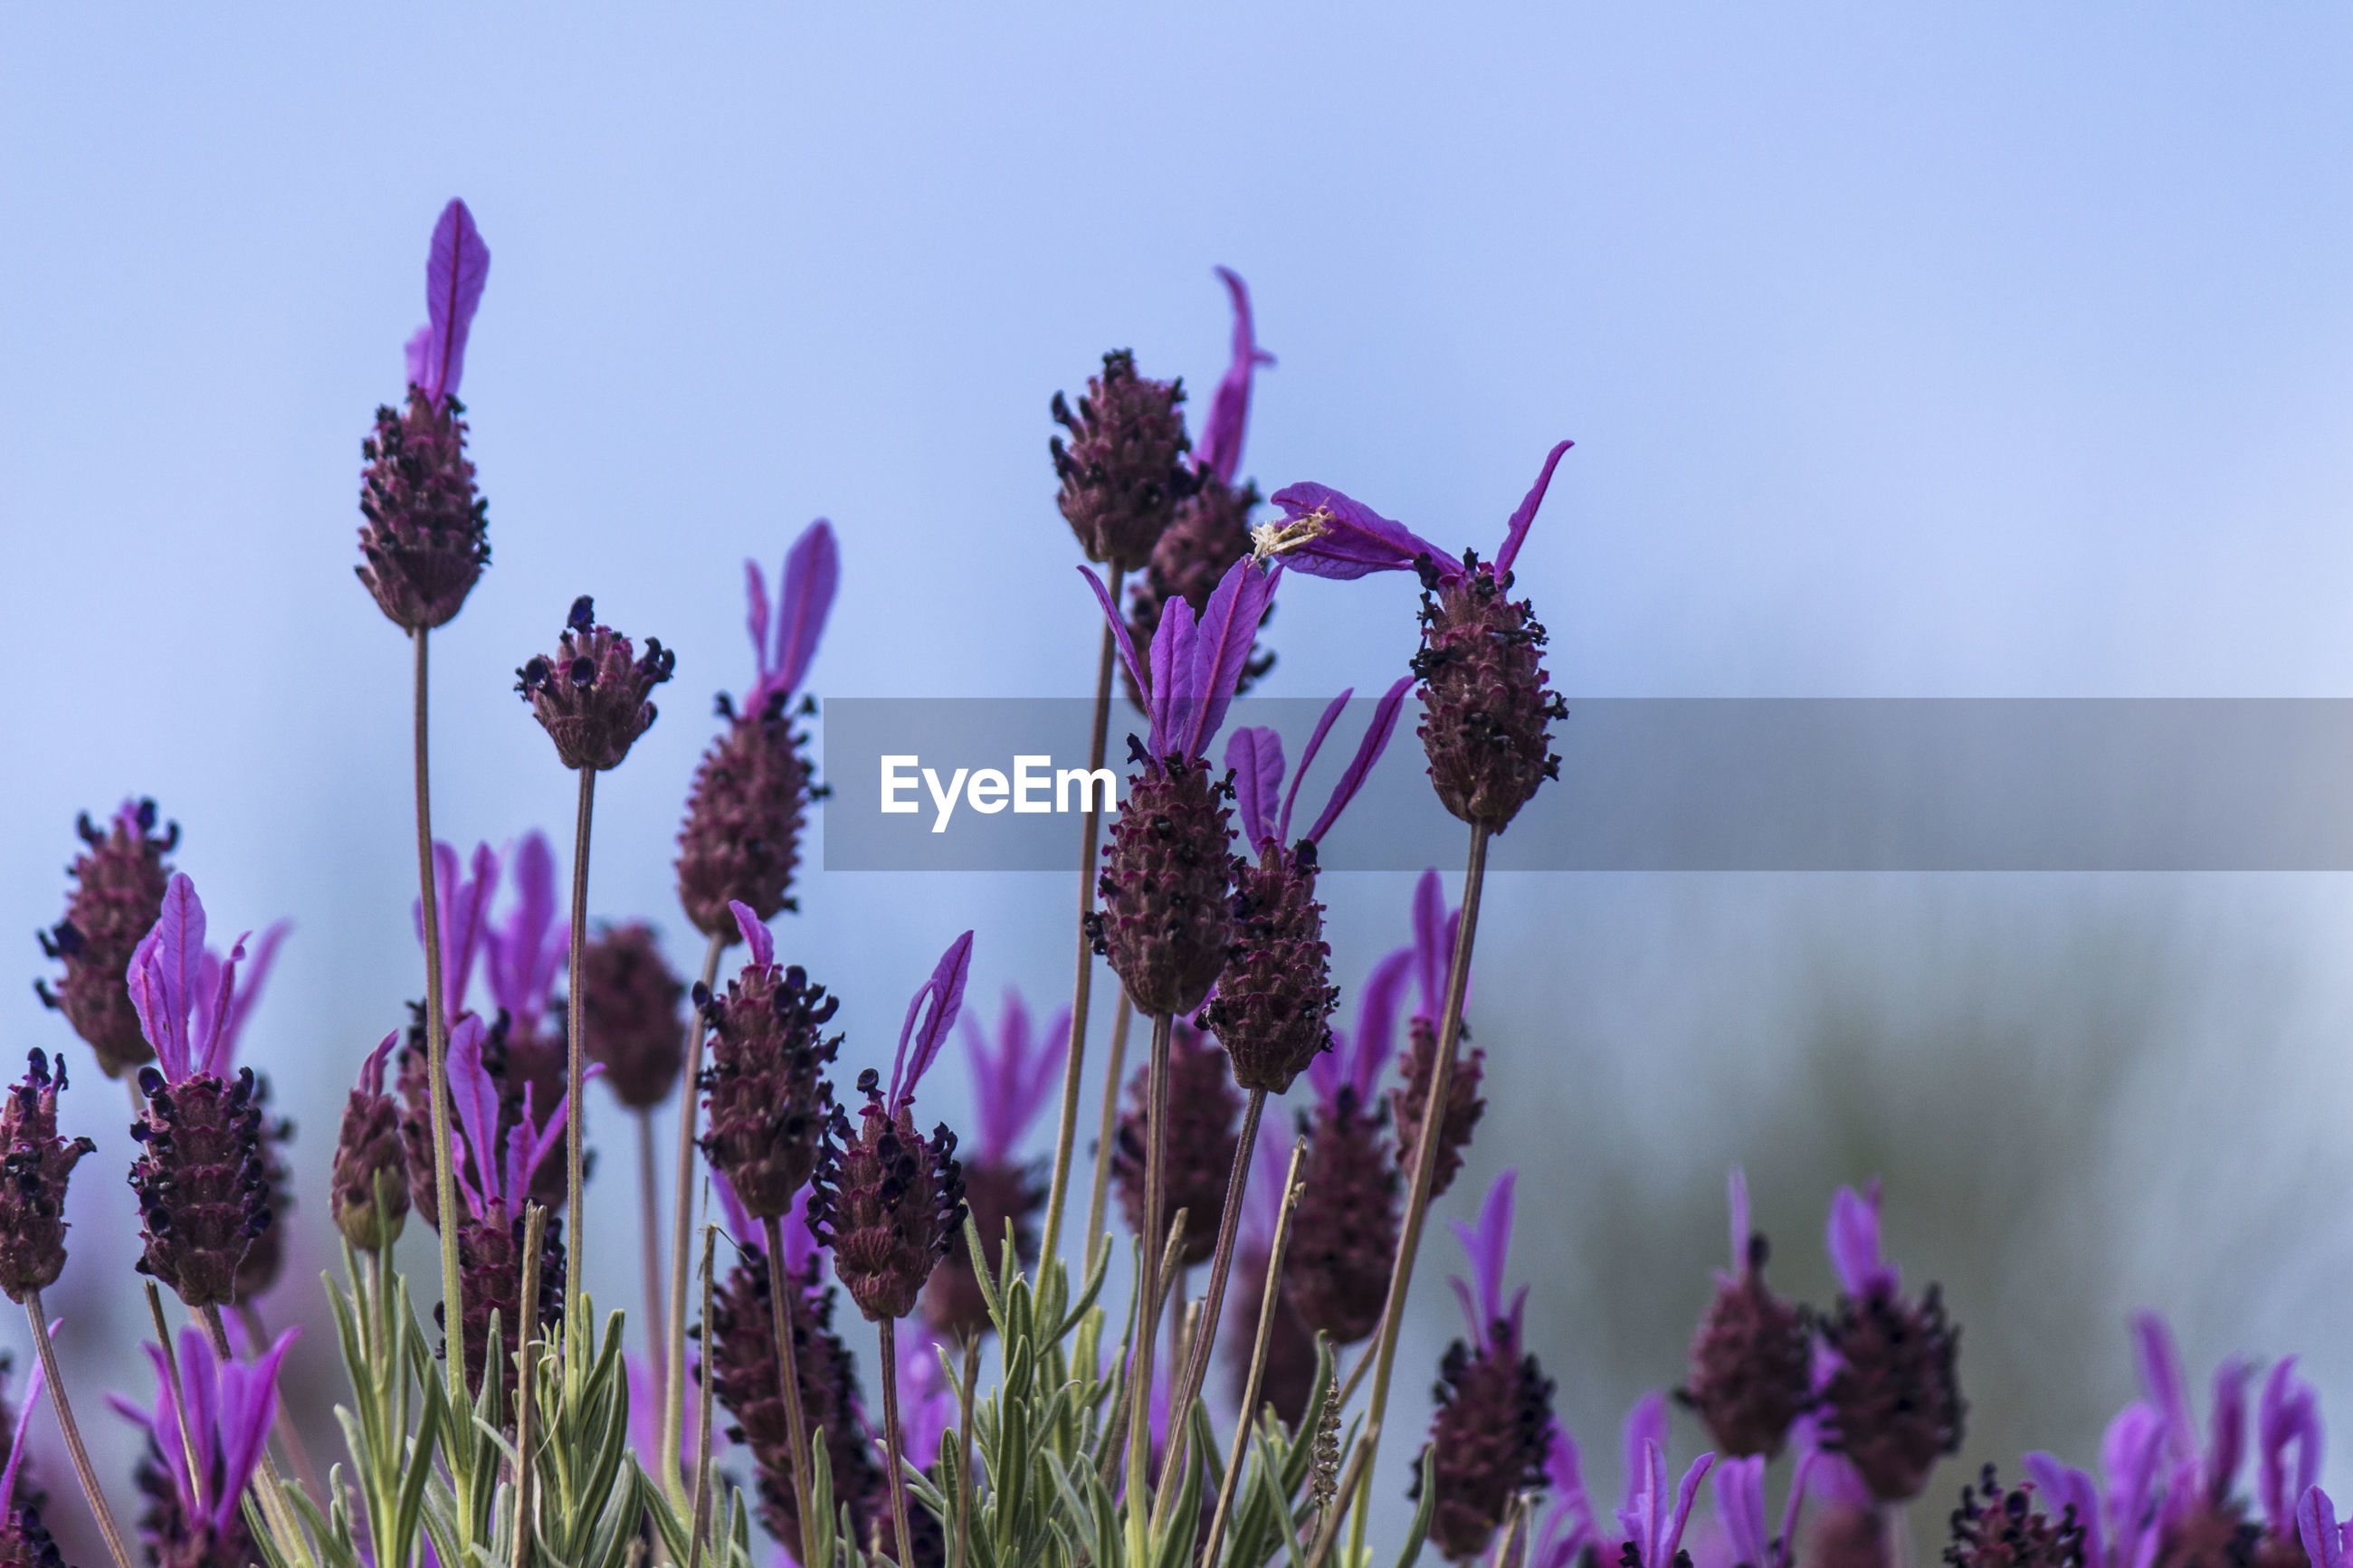 PURPLE FLOWERING PLANTS AGAINST SKY